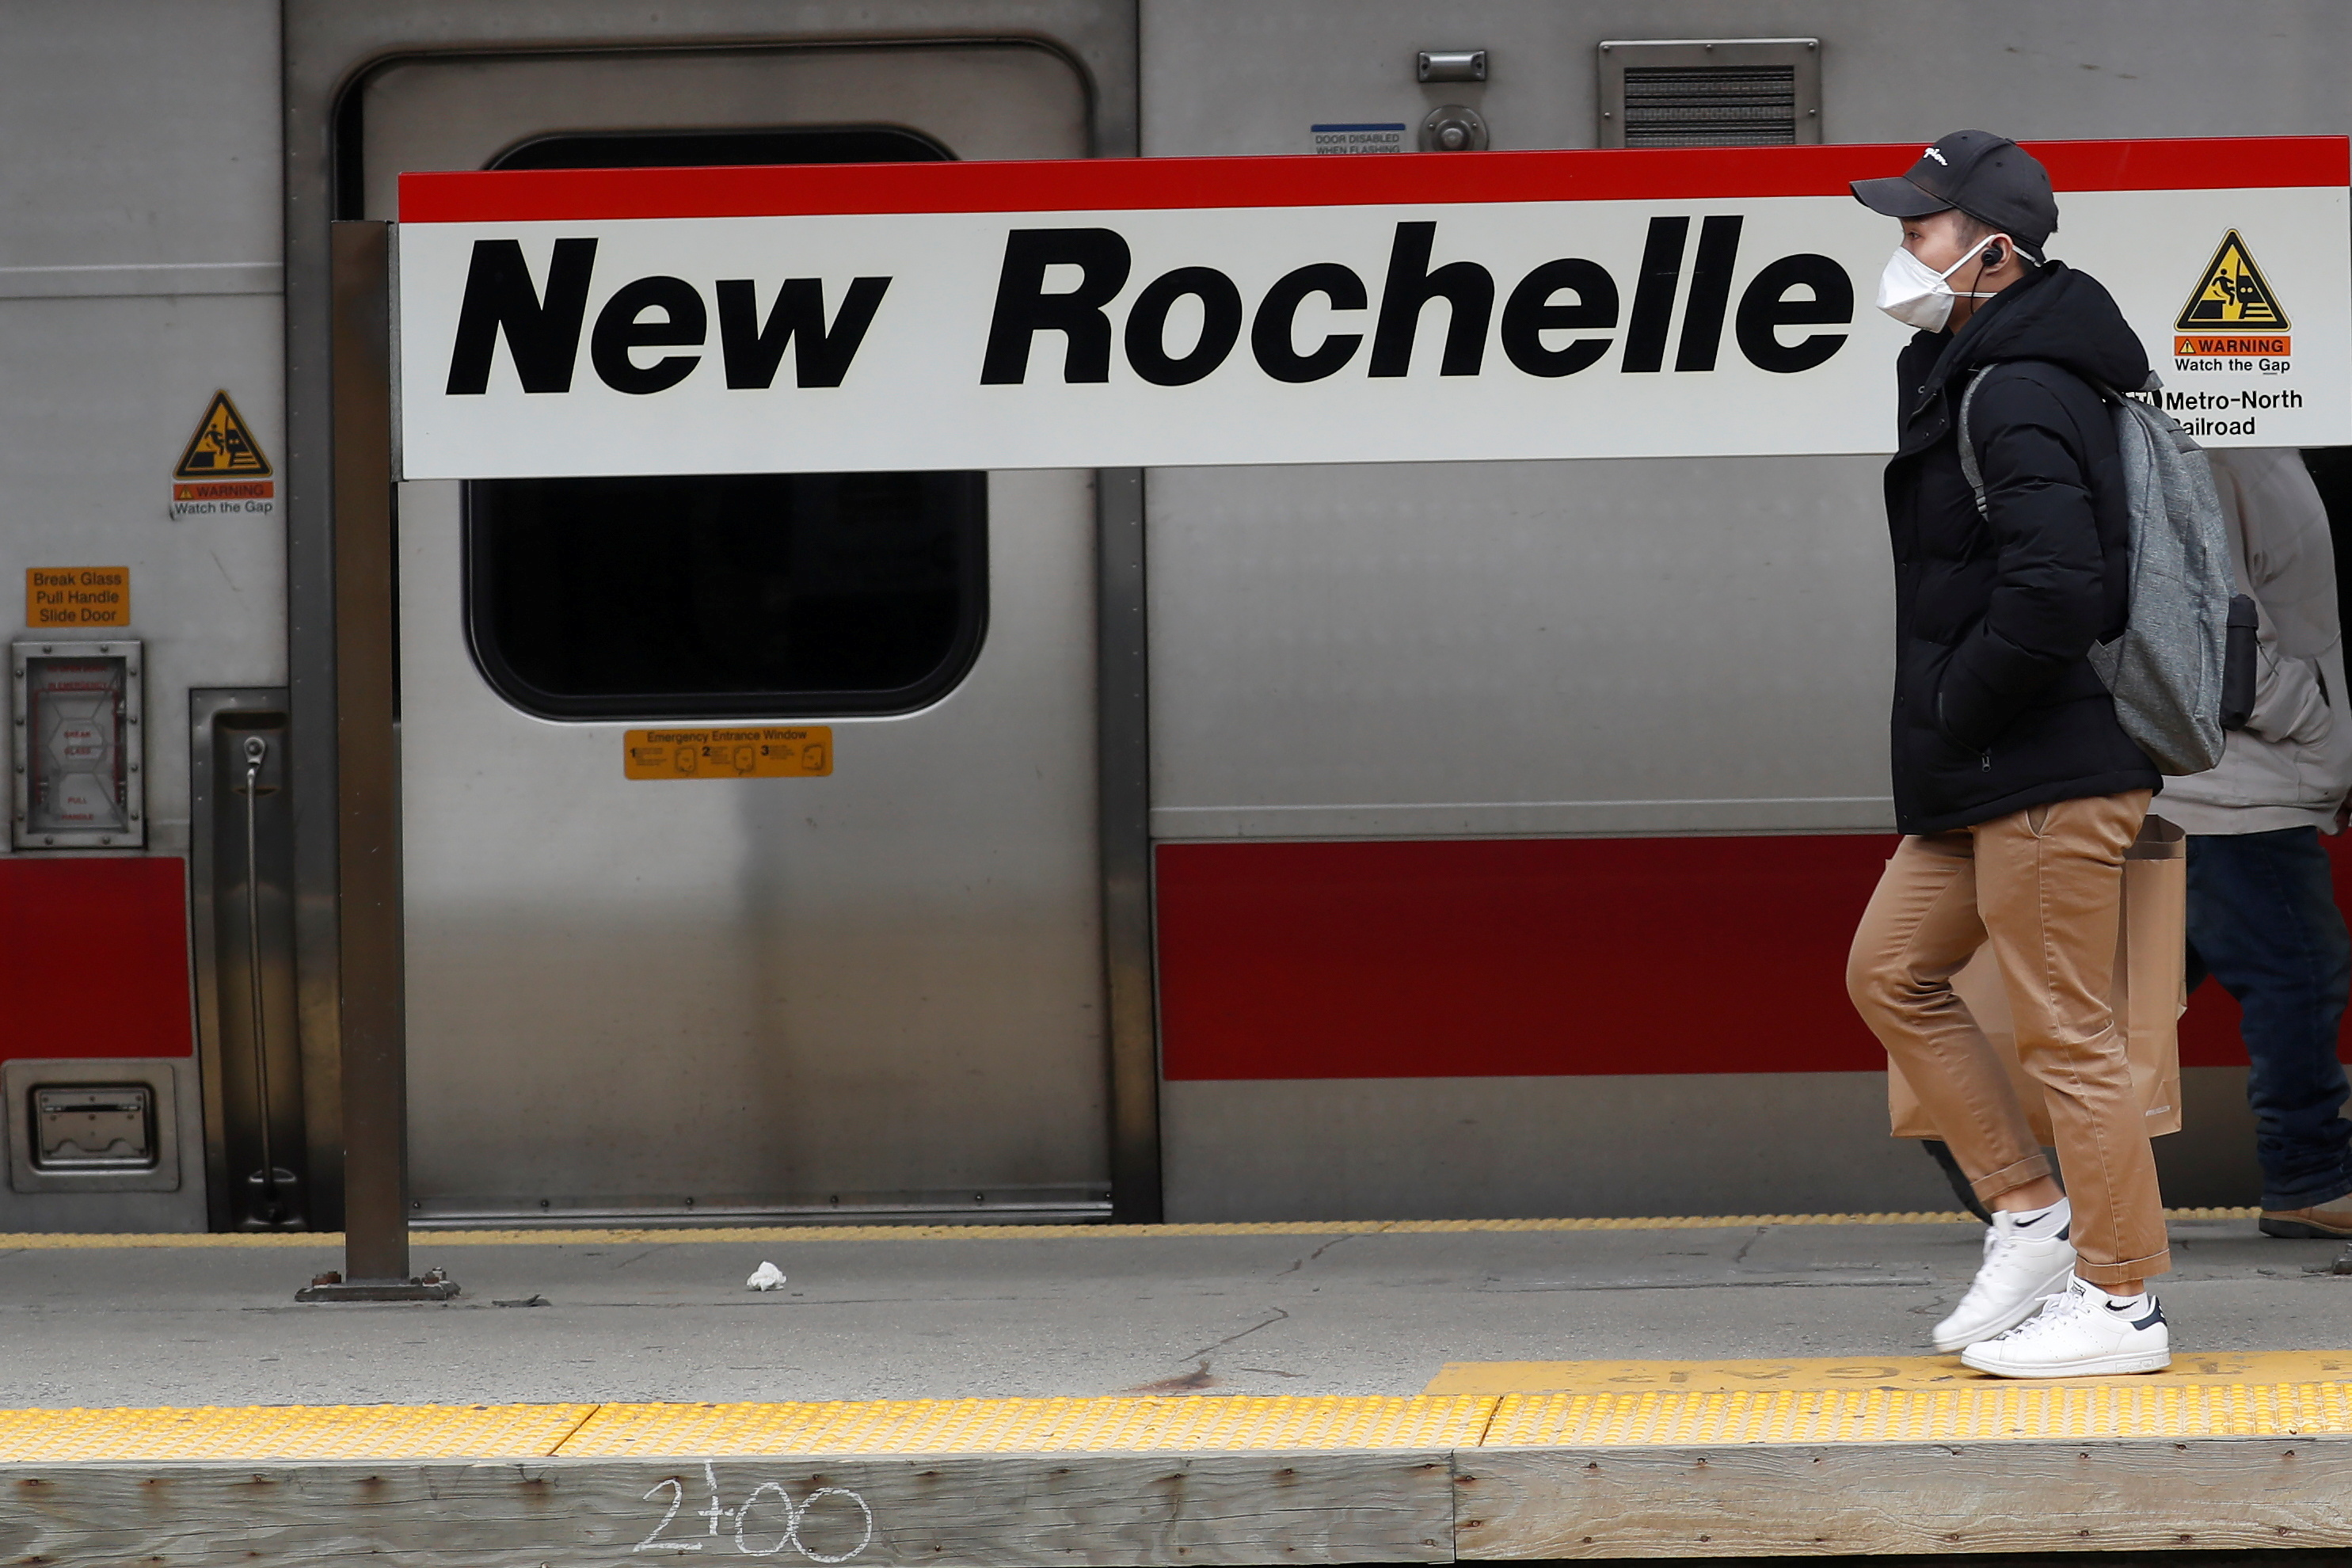 A man wears a mask as he walks on a commuter train platform during the coronavirus outbreak in New Rochelle, New York, U.S., March 12, 2020. REUTERS/Shannon Stapleton/File Photo